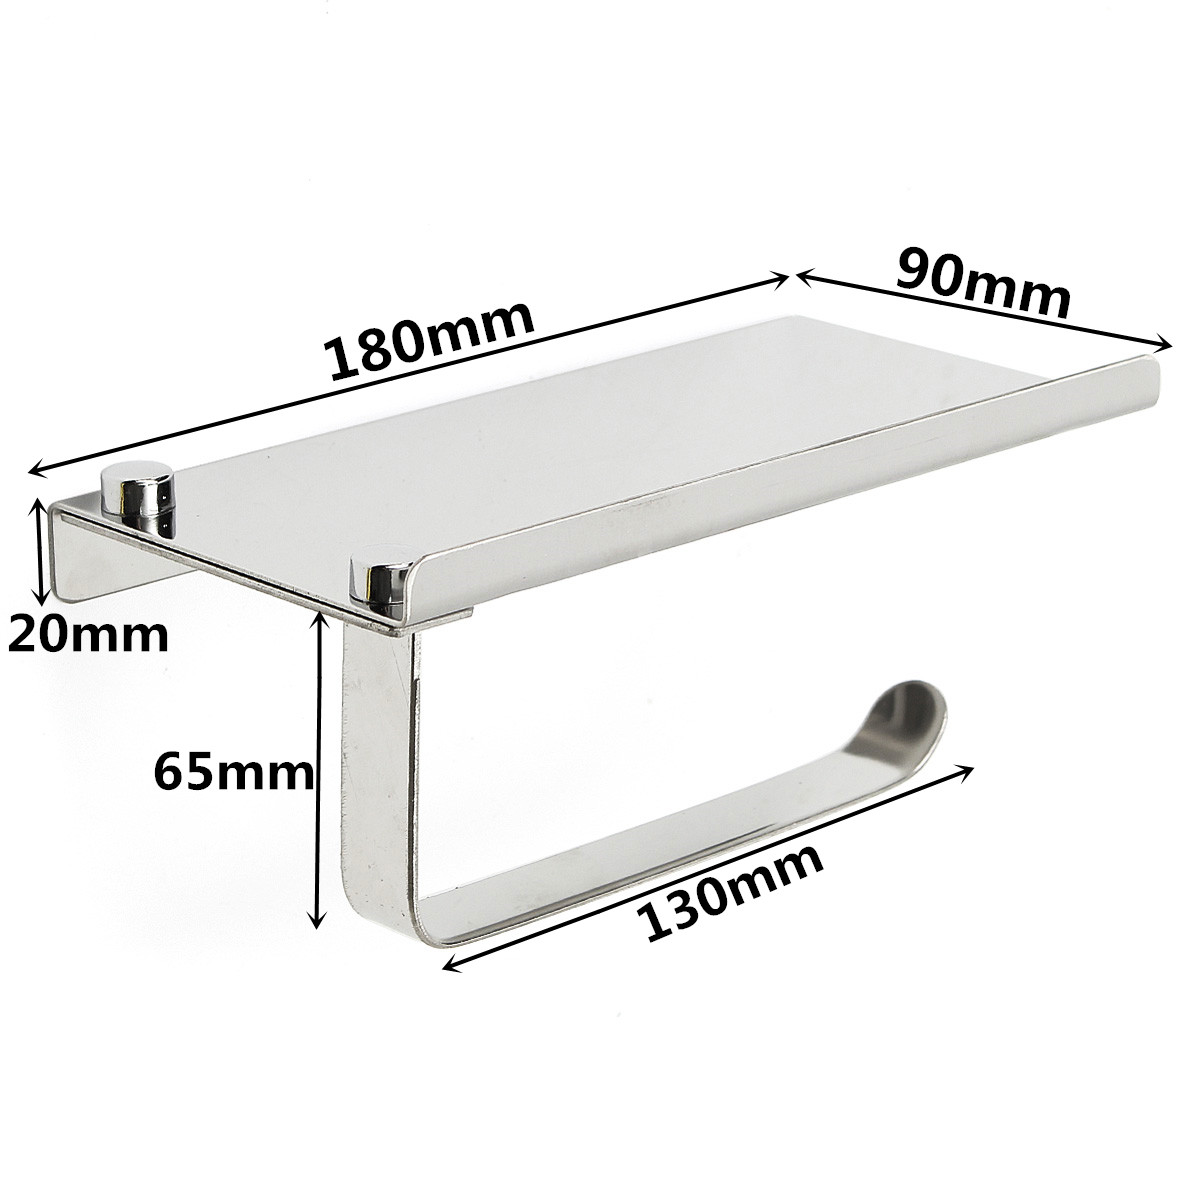 Stainless Steel Toilet Roll Tissue Stand Paper Holder Wall Mounted for Home Bathroom Paper Hook